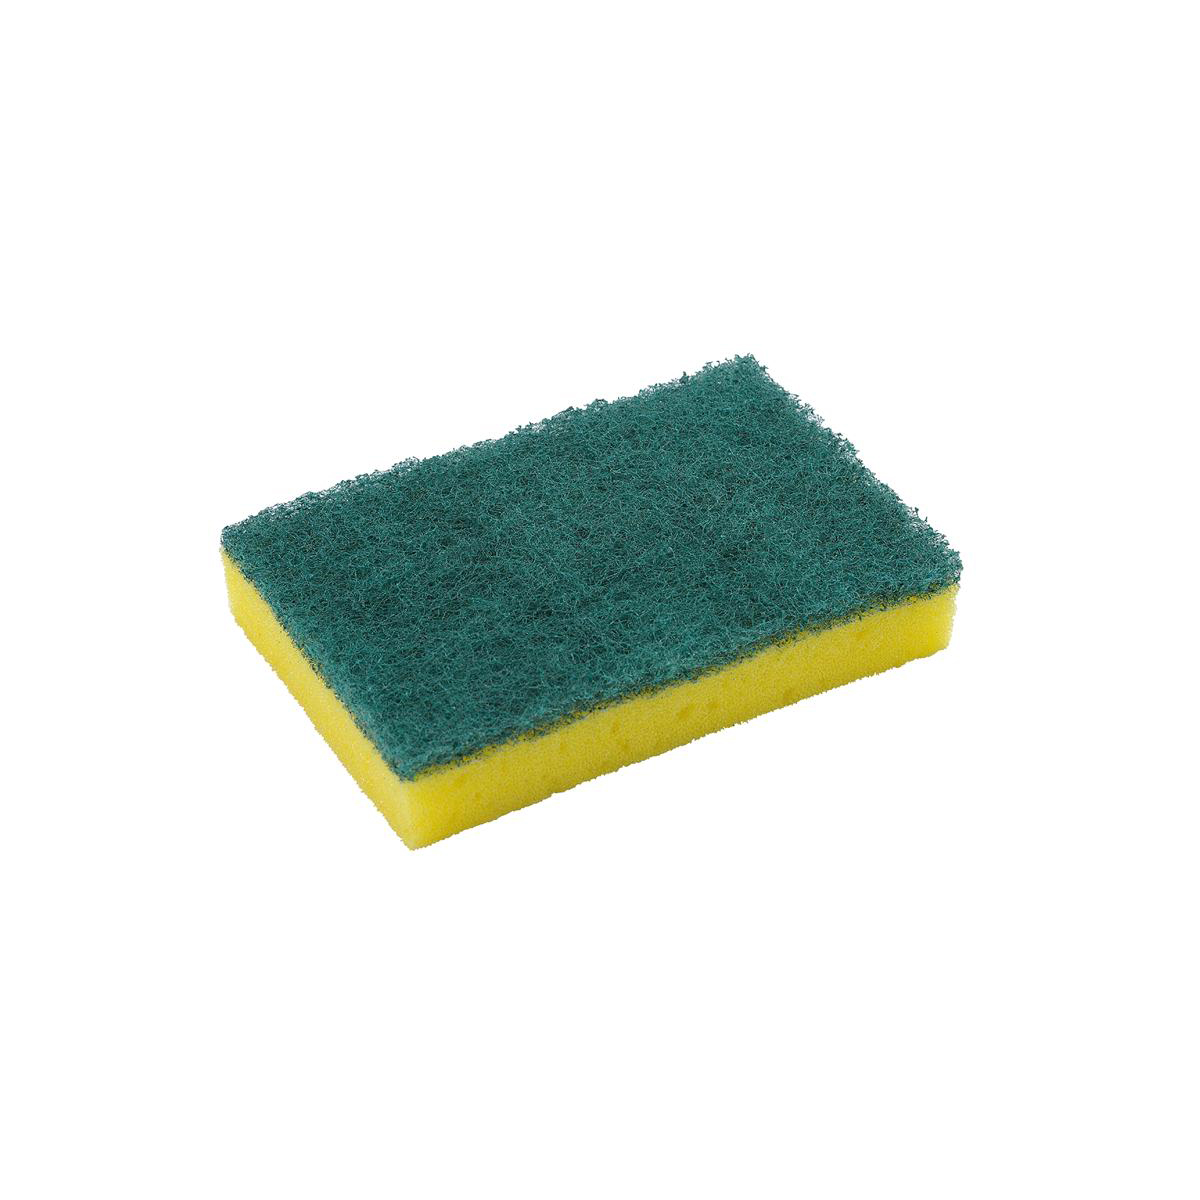 Cleaning Chemicals Washing Up Pad Sponge Scourer Pack 10